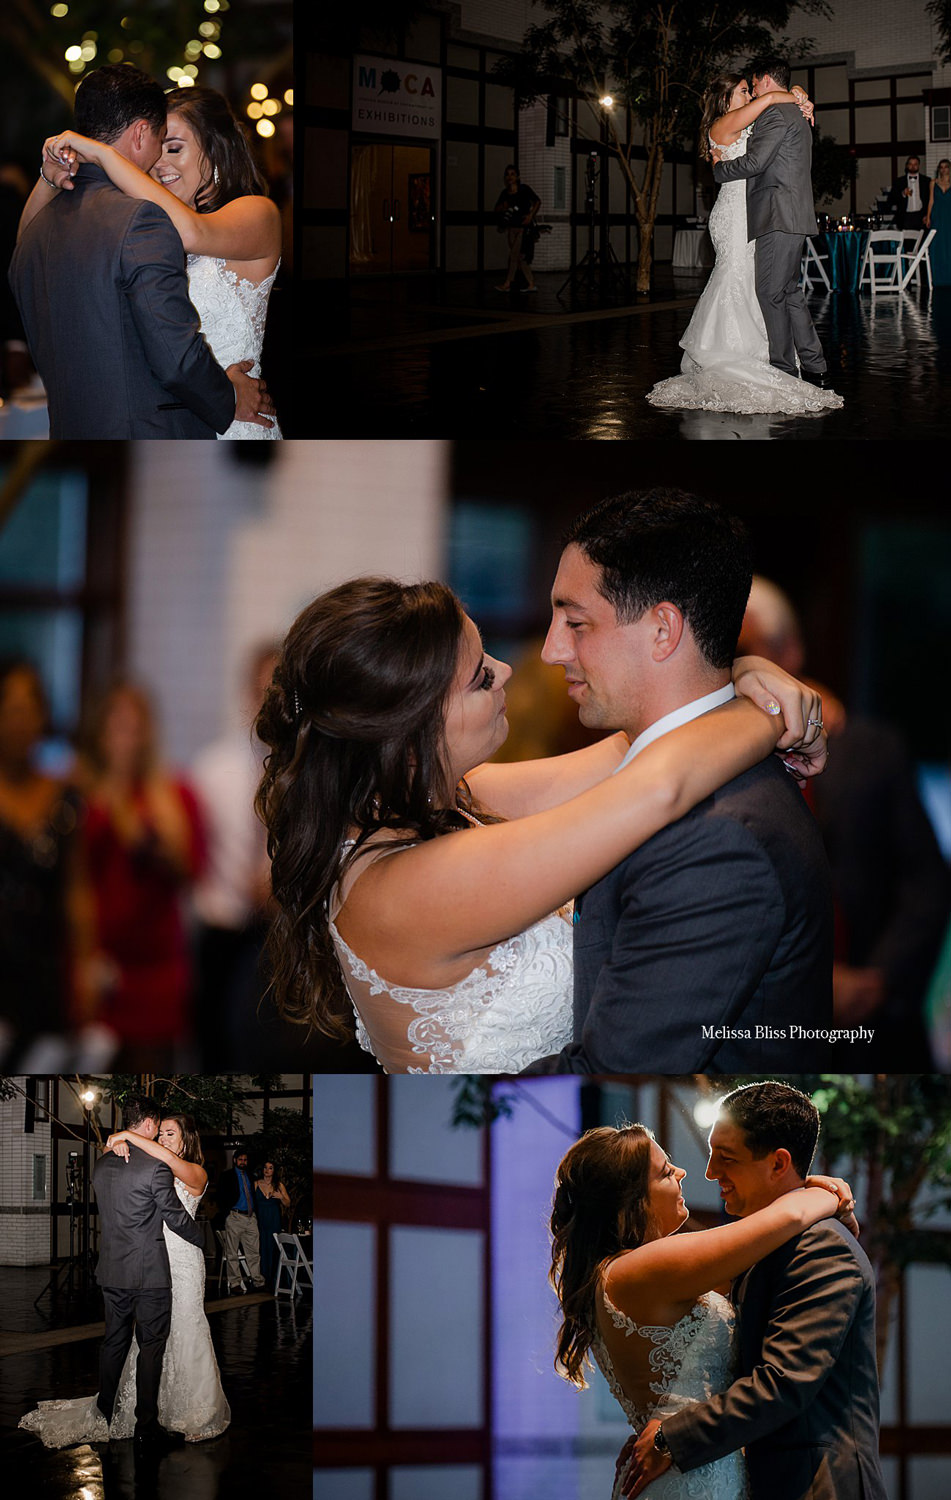 bride-and-grooms-first-dance-at-MOCA-virginia-beach-wedding-melissa-bliss-photography.jpg